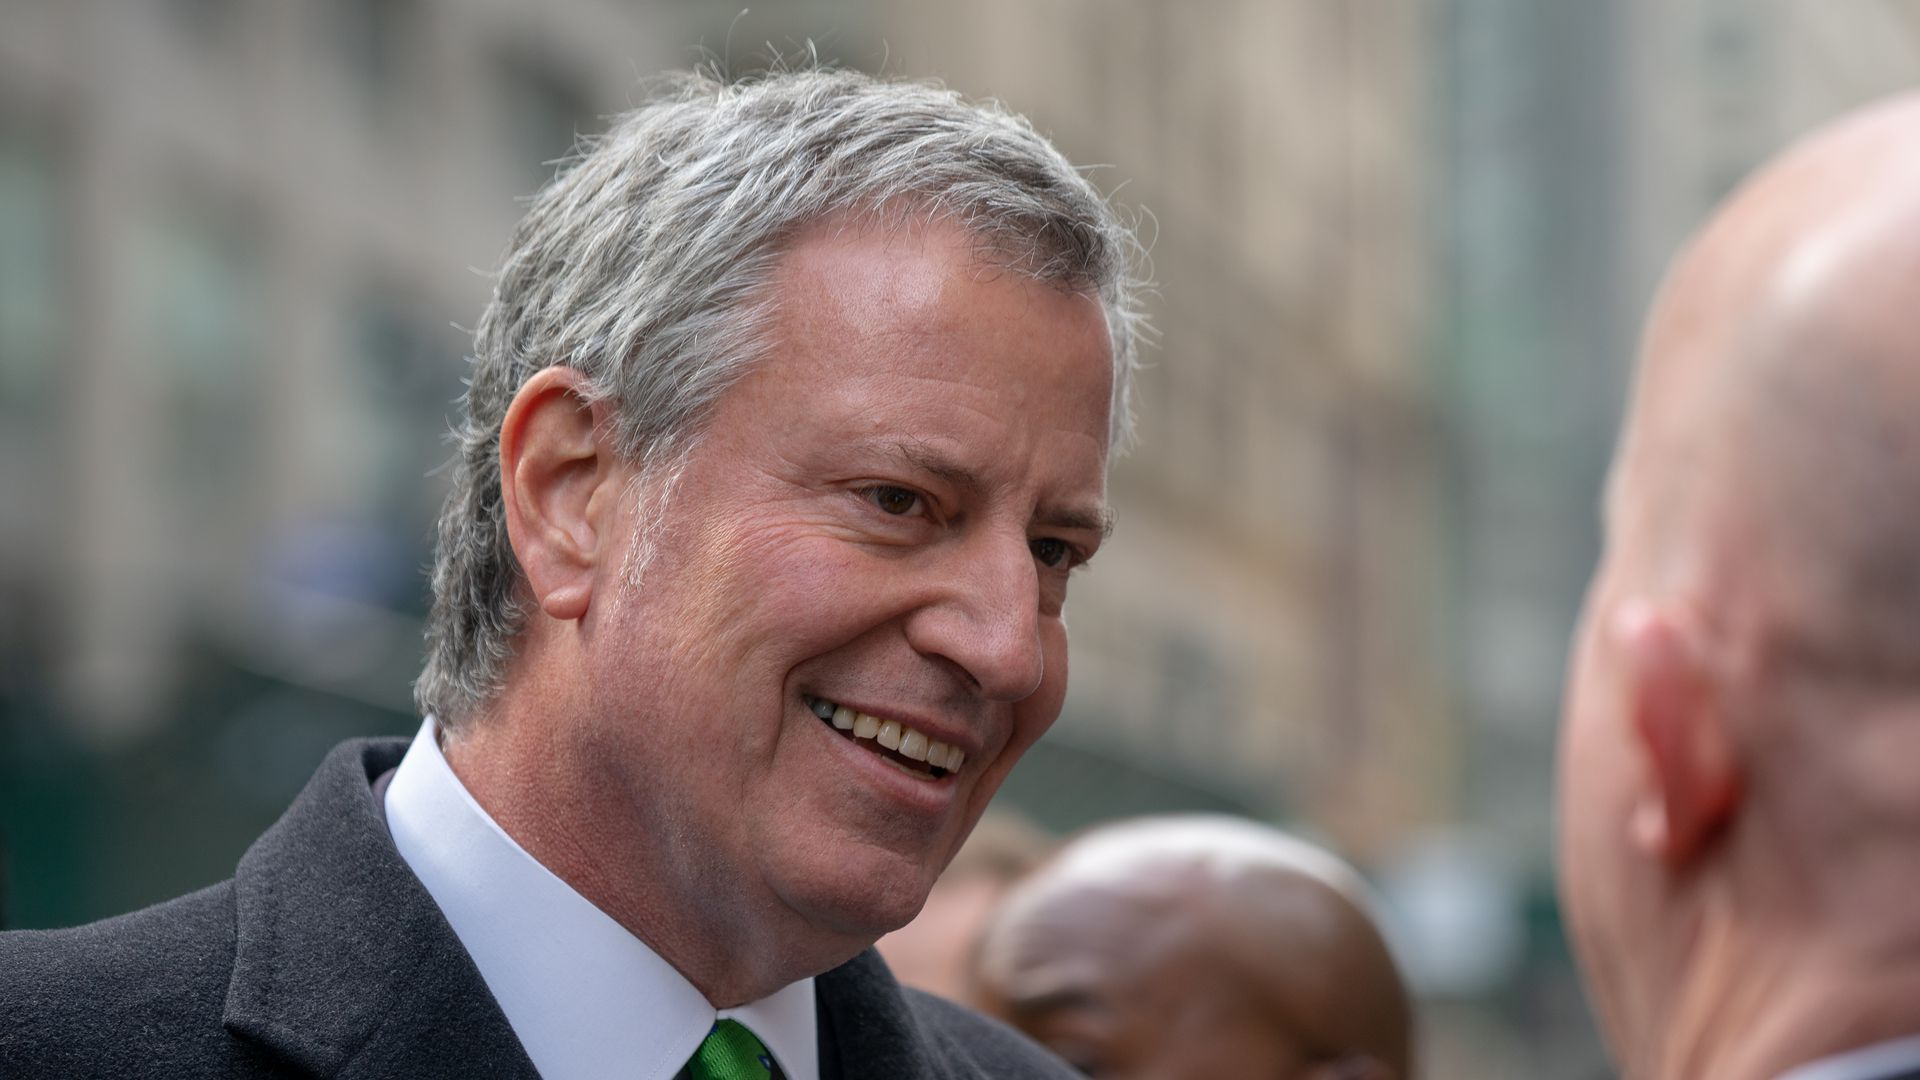 NYC Mayor Bill de Blasio to launch 2020 presidential campaign